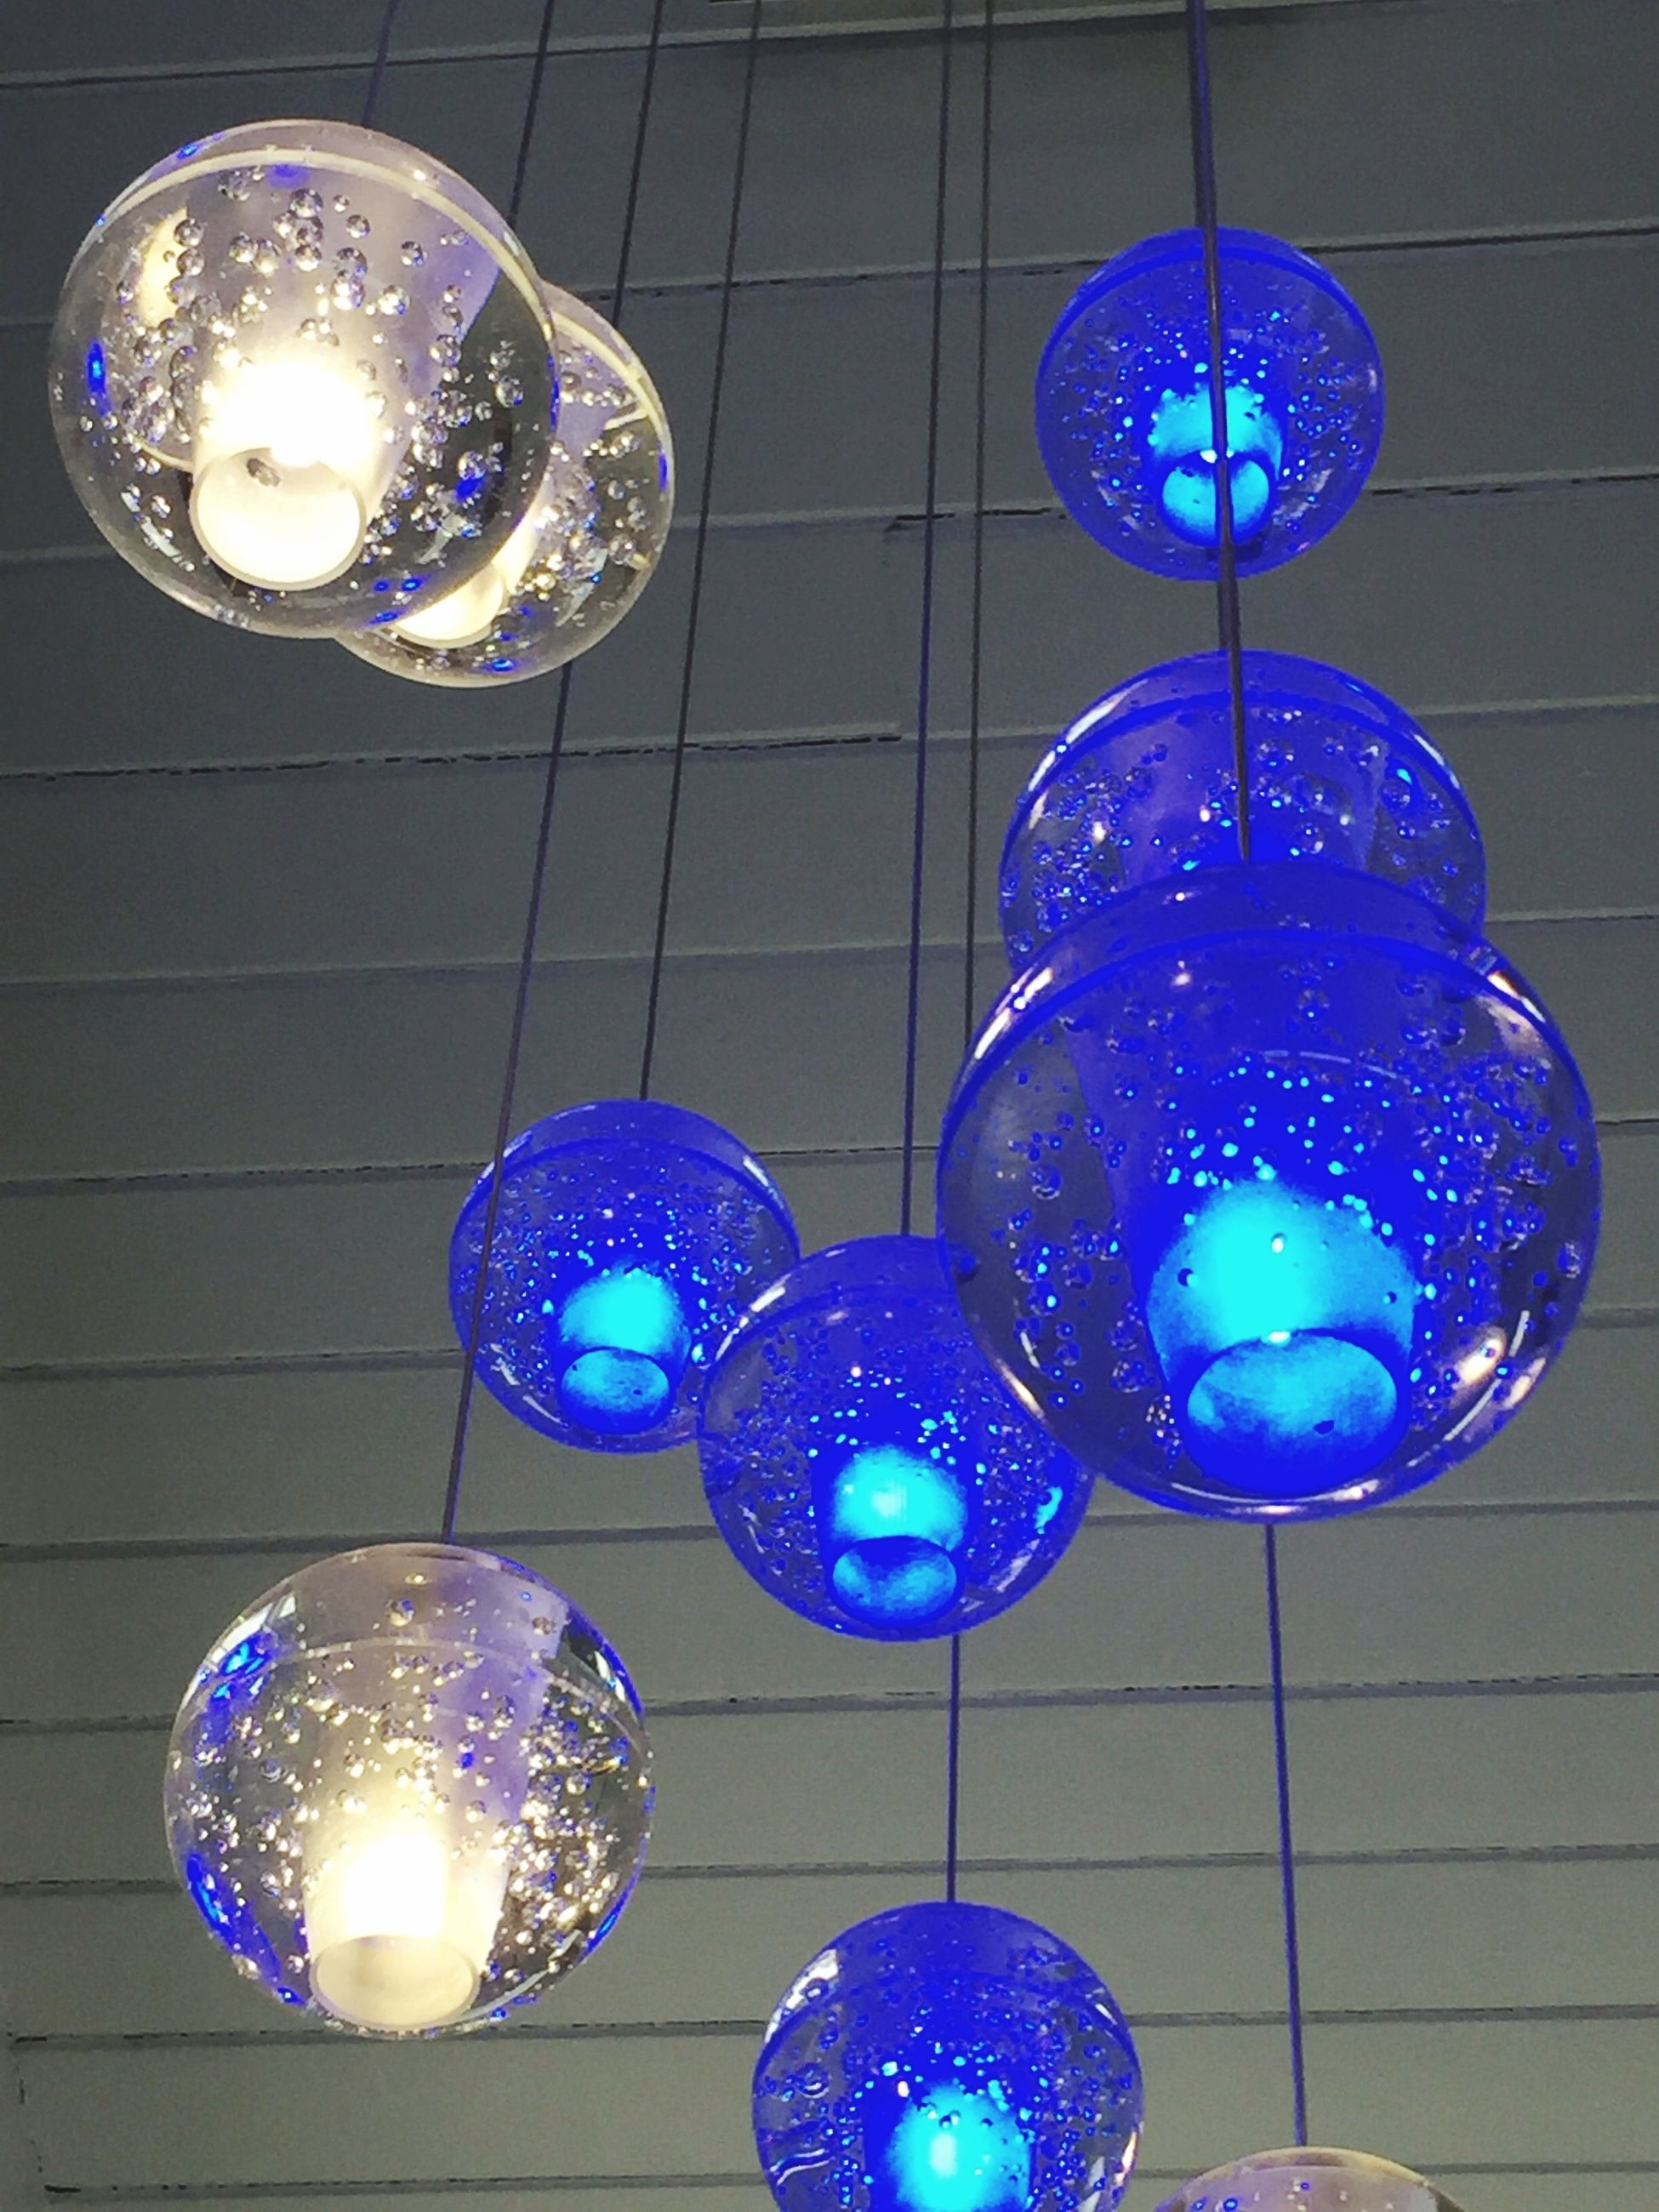 disco ball, blue, lighting equipment, hanging, illuminated, low angle view, party - social event, shiny, no people, event, multi colored, indoors, disco dancing, dance floor, night, luminosity, helium